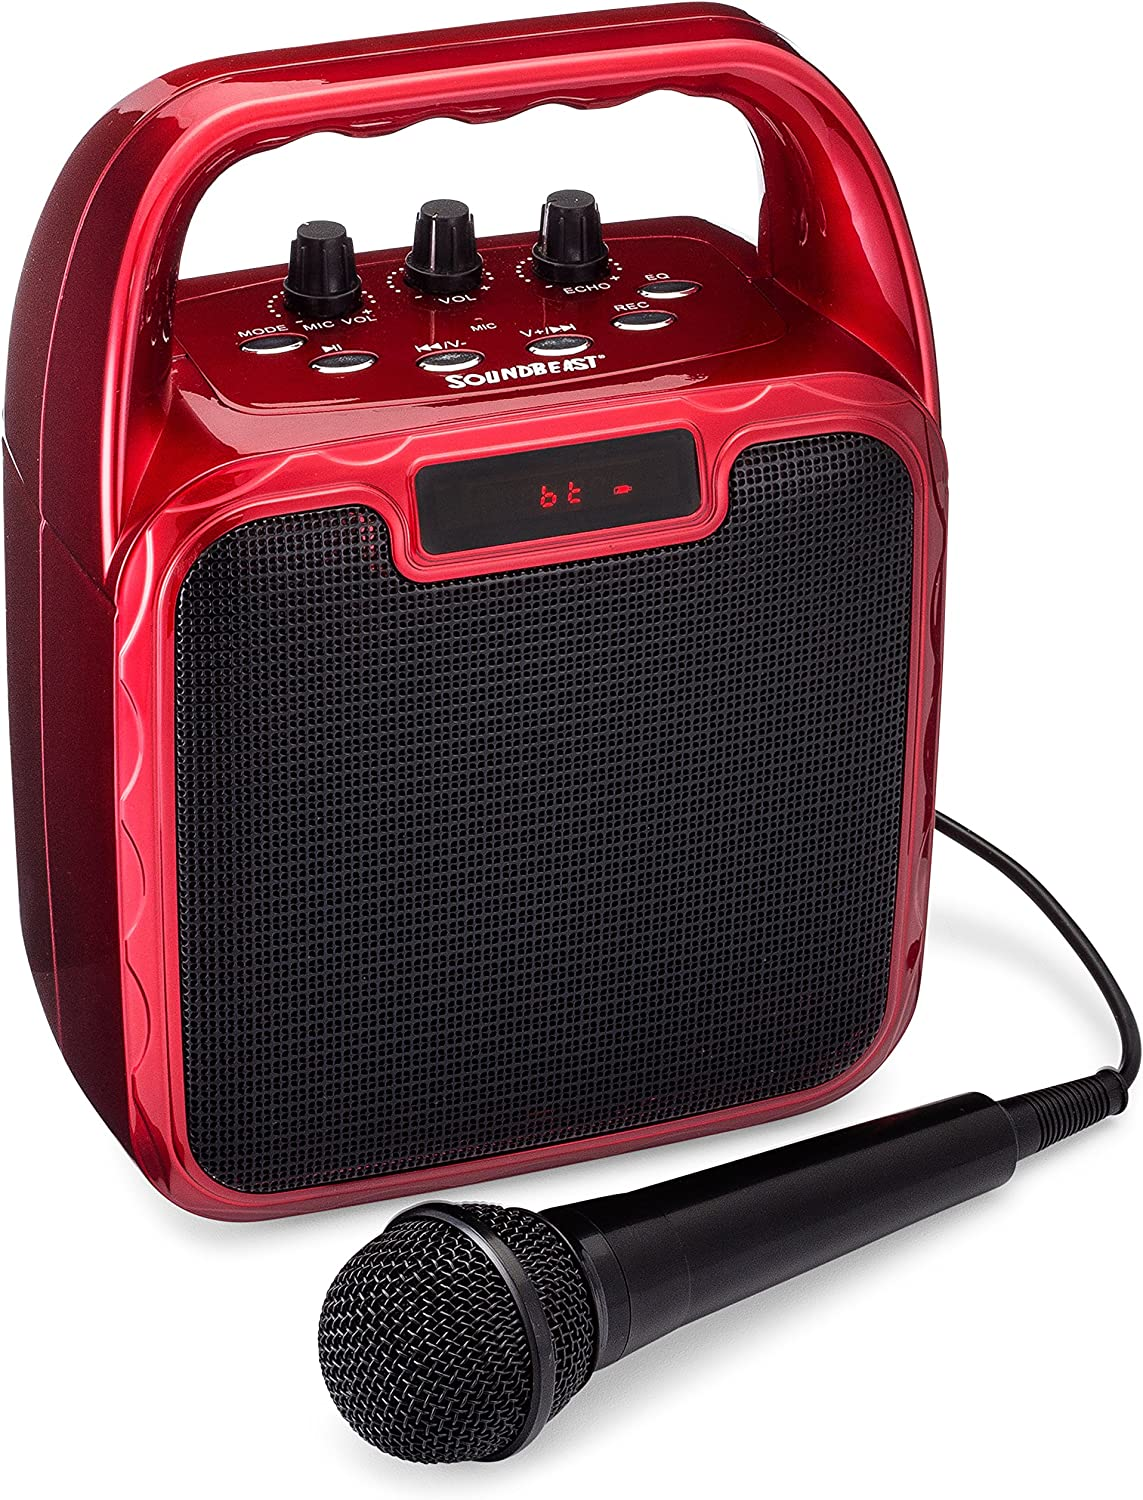 SoundBeast Pegasus Karaoke Machine & Portable PA Speaker System For Kids & Adults - With Microphone & Bluetooth (Red)